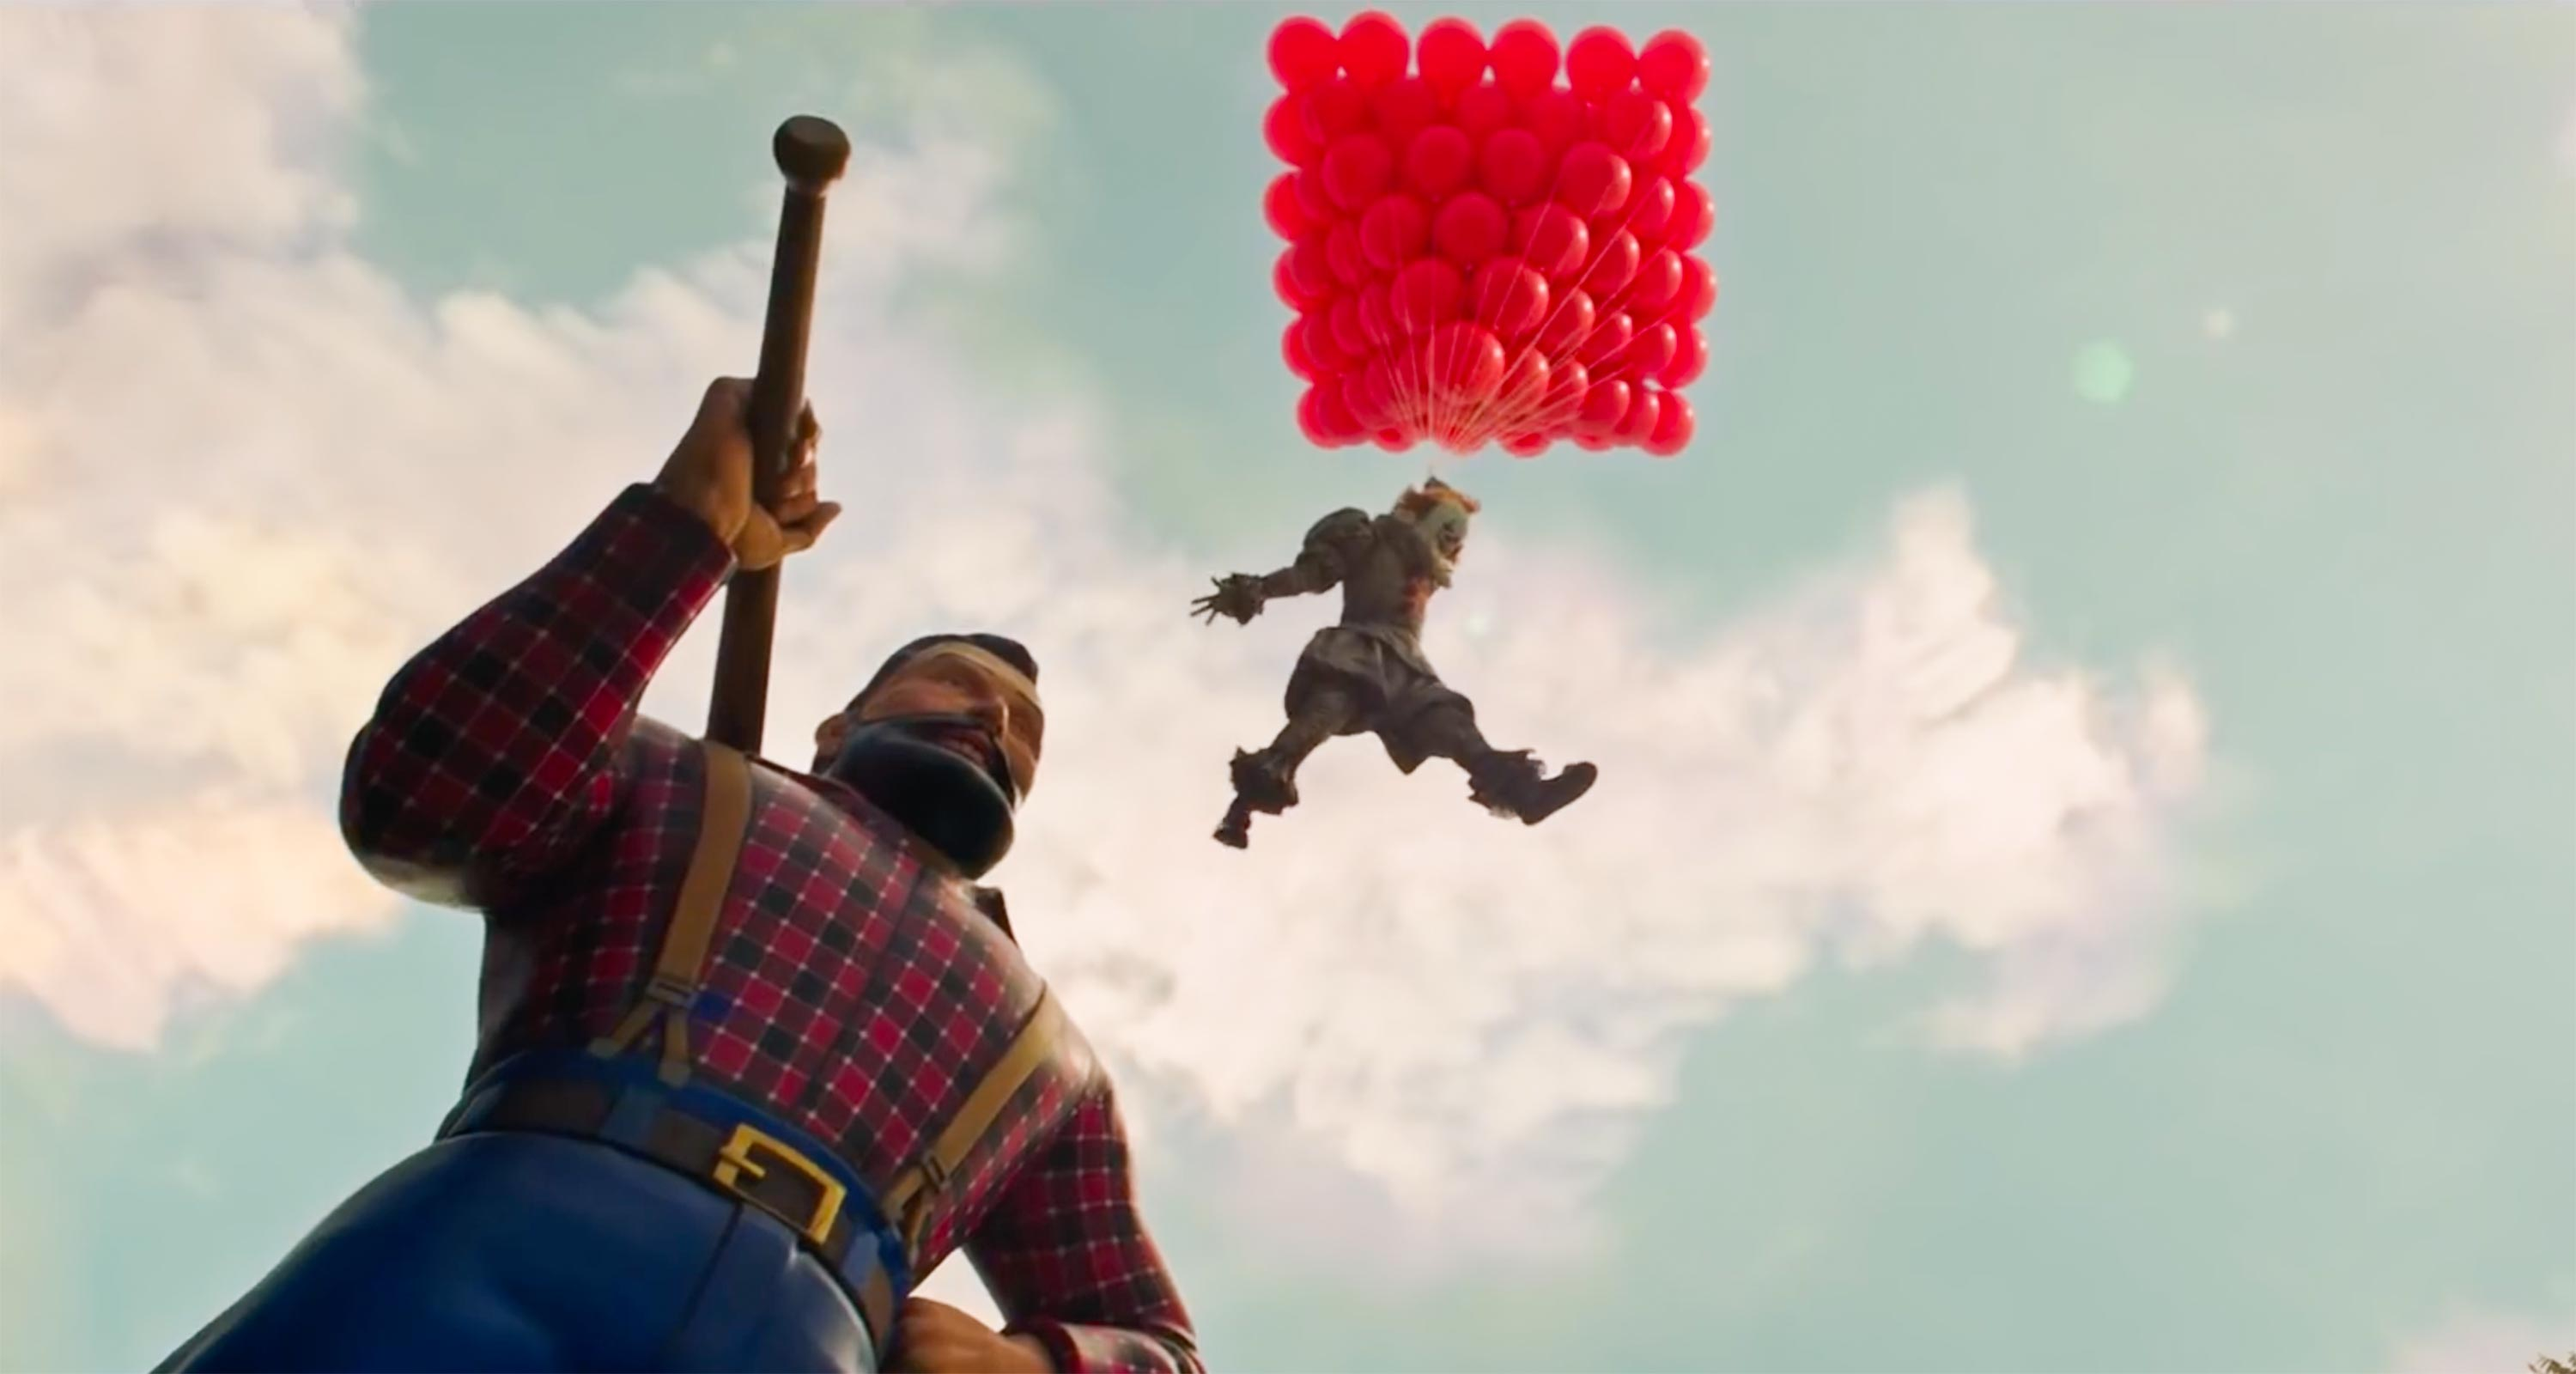 IT Chapter 2 trailer screen grab